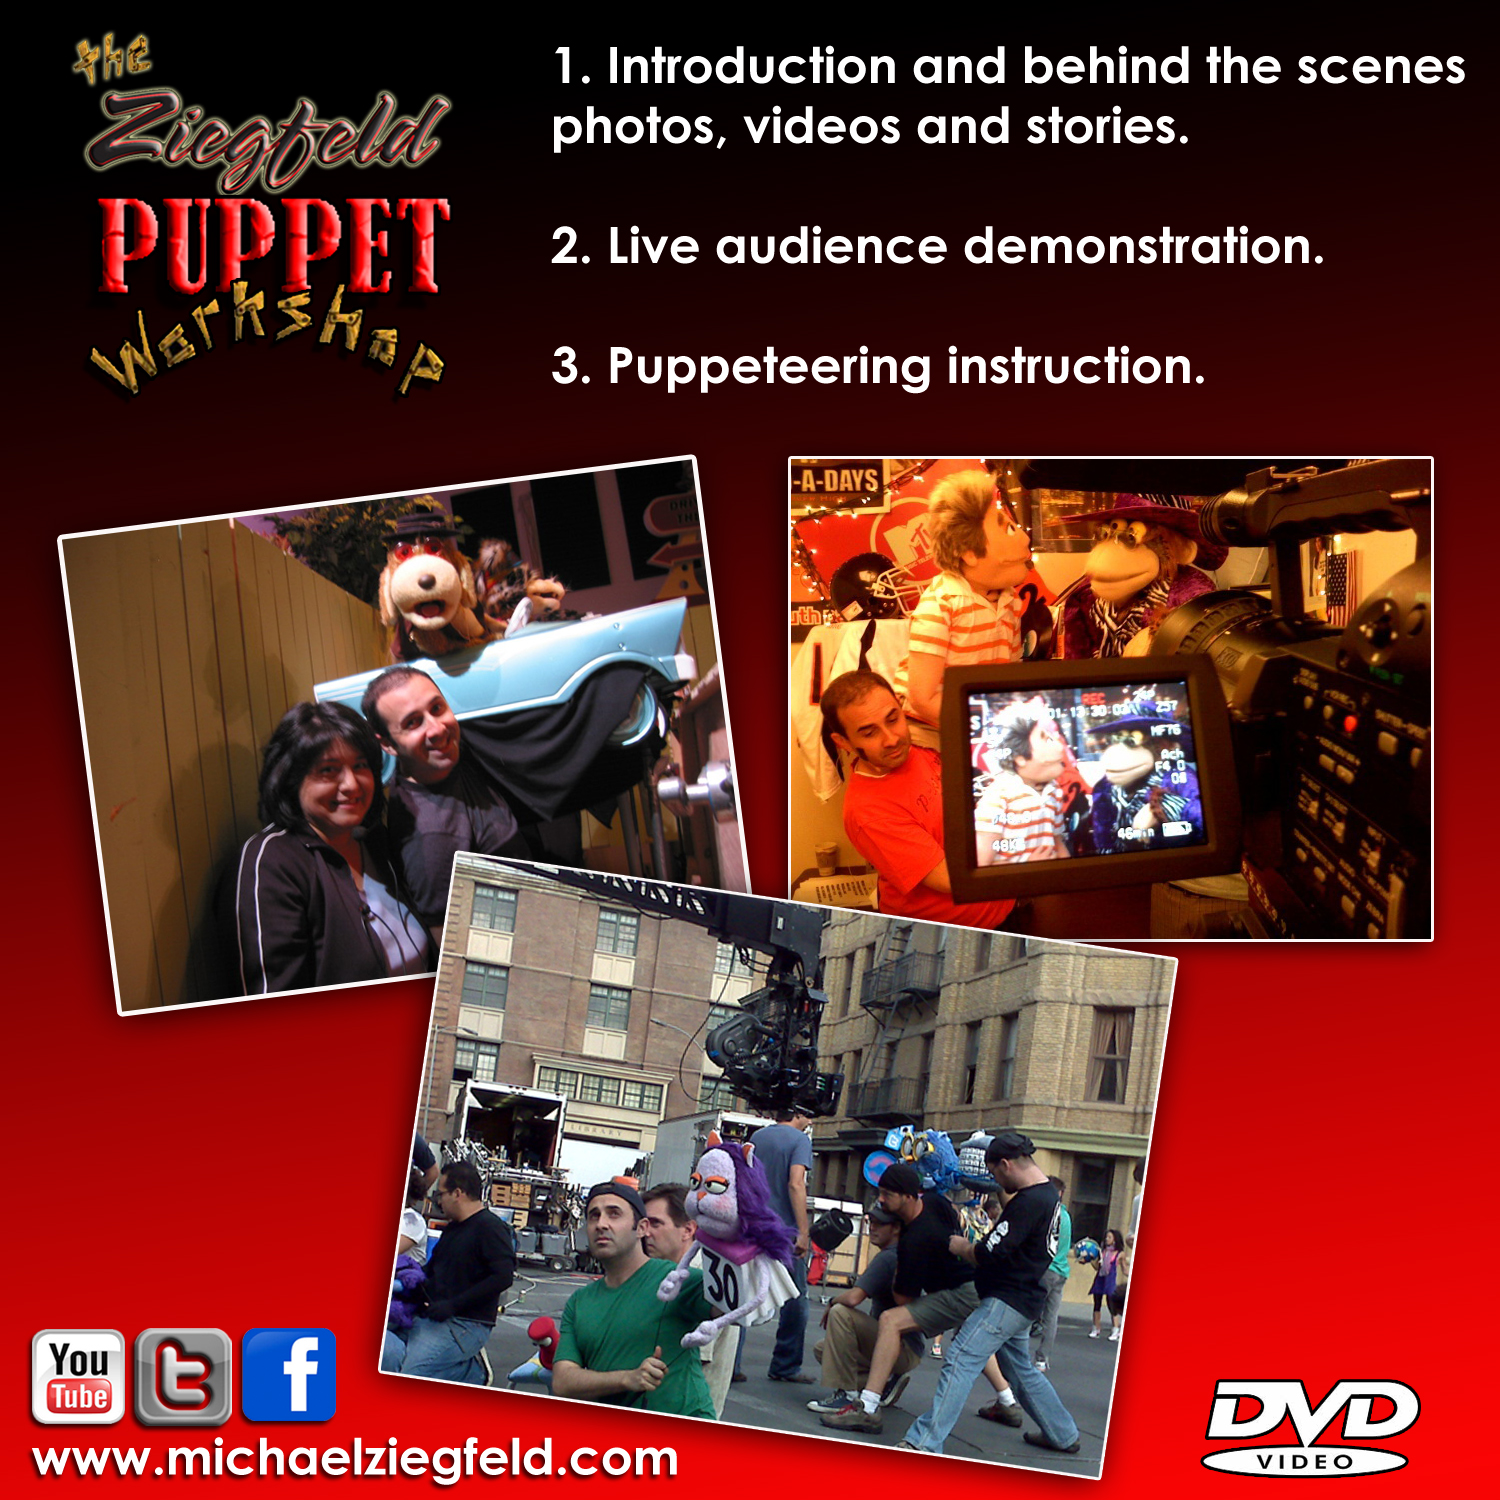 puppet workshop dvd sleeve back